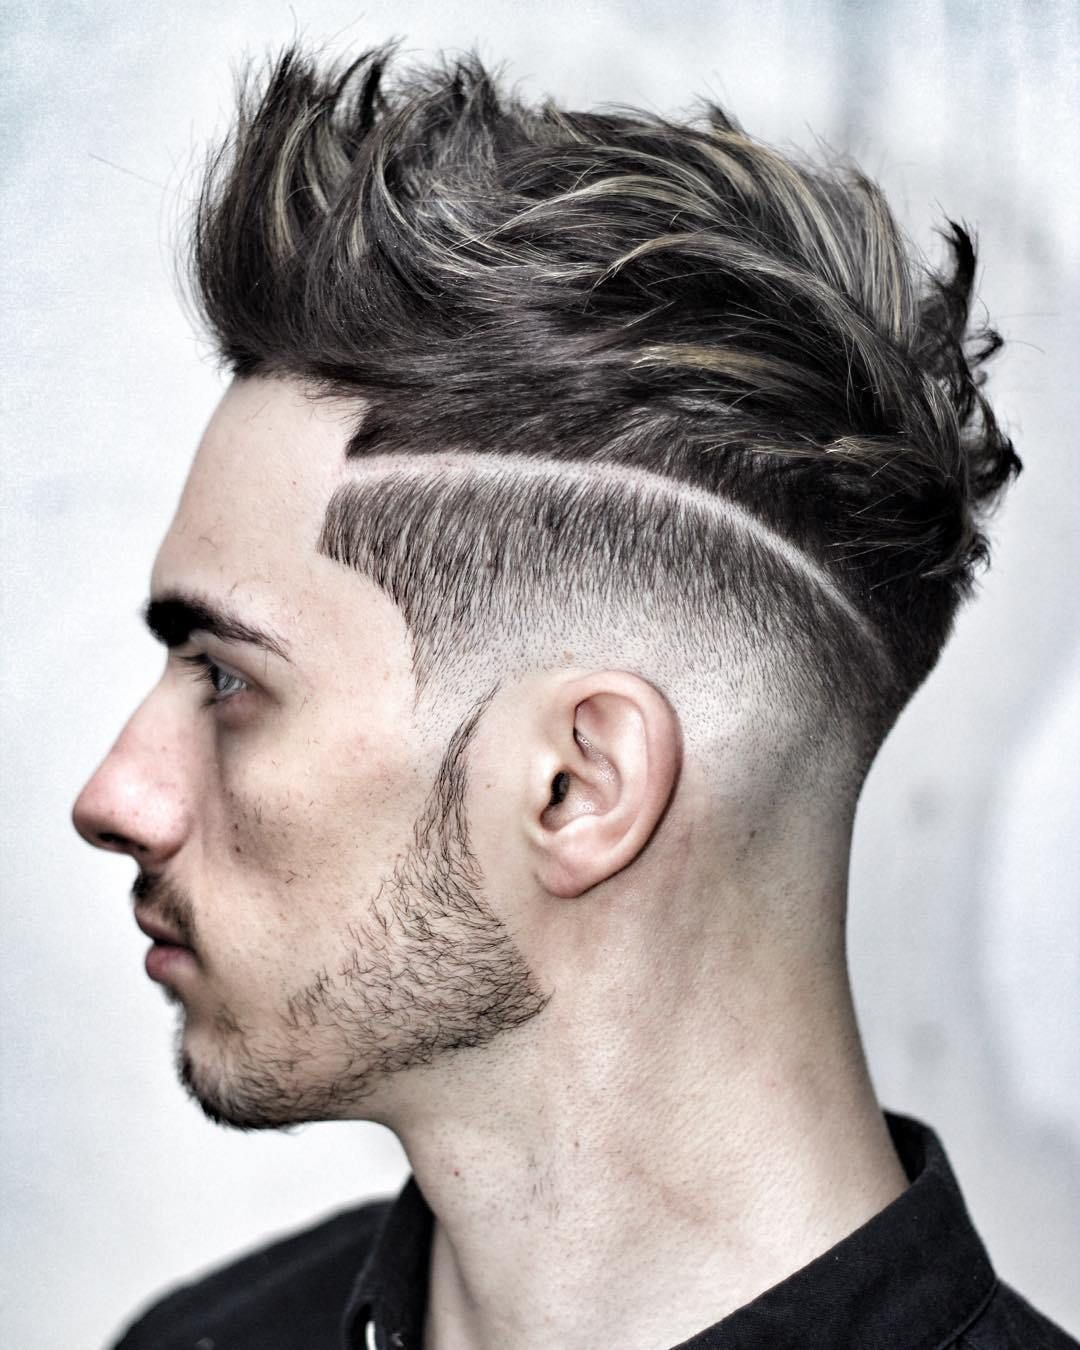 27 Coolest Haircut Designs For Guys To Try In 2019 | Men\'s ...